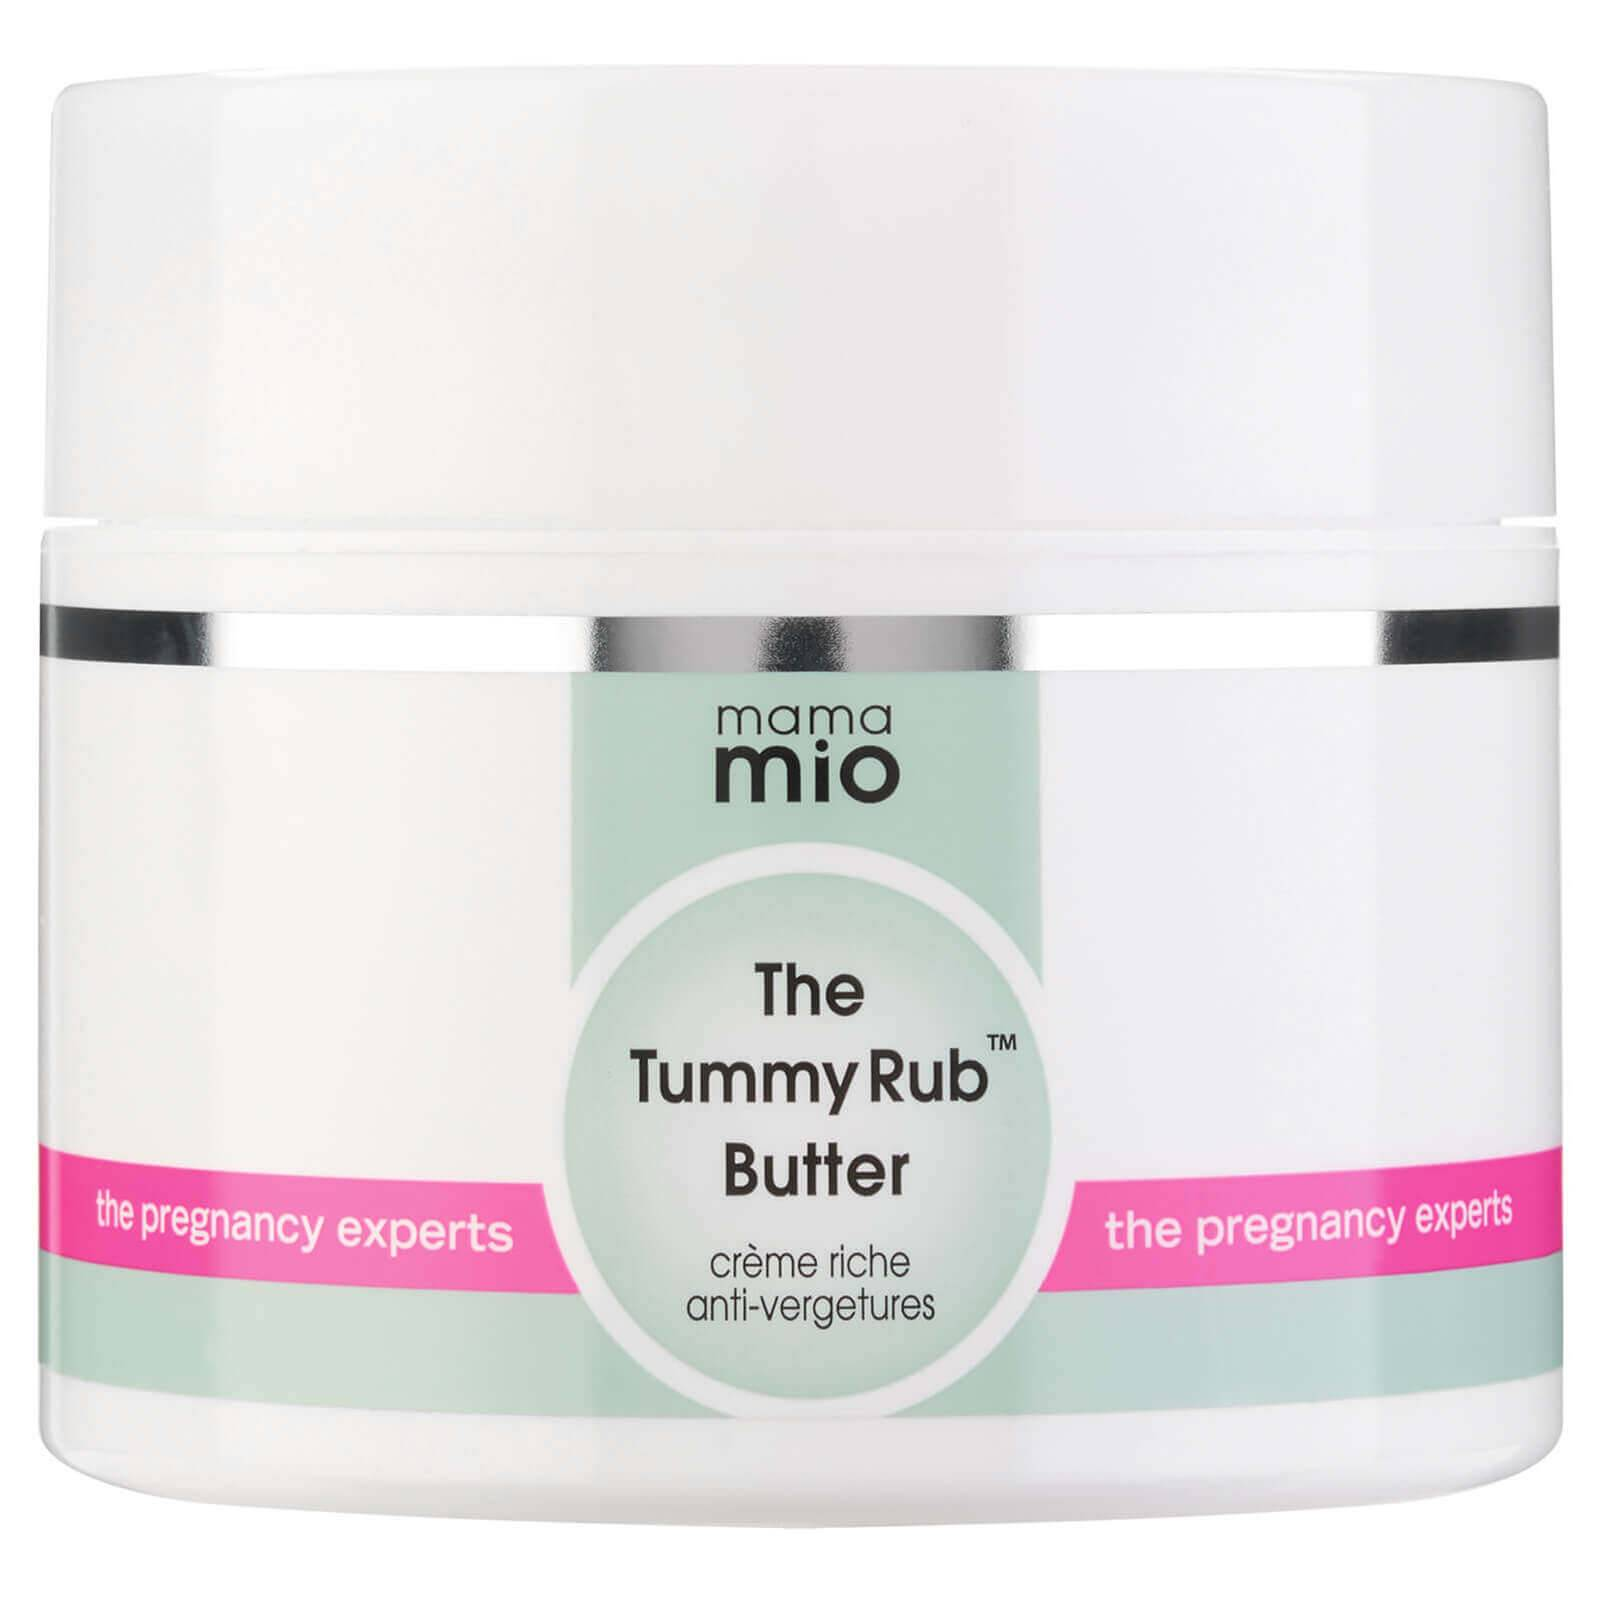 Mama Mio The Tummy Rub Crème Riche Anti-Vergetures (240g)